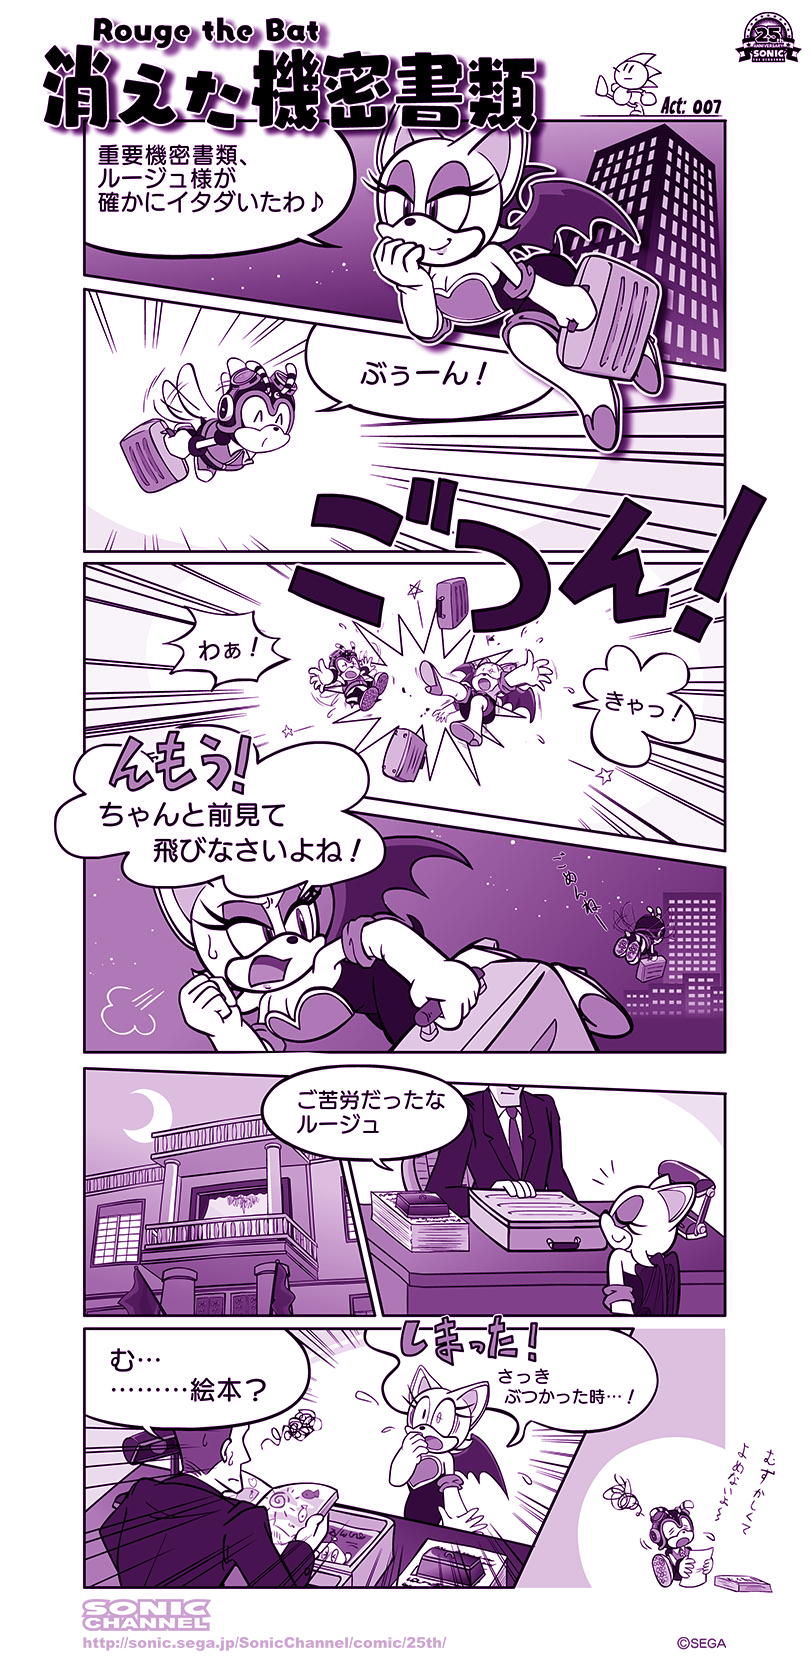 1girl 2boys artist_request briefcase bumping charmy_bee comic commentary flying highres indoors monochrome multiple_boys official_art outdoors rouge_the_bat sky sonic_the_hedgehog surprised translation_request